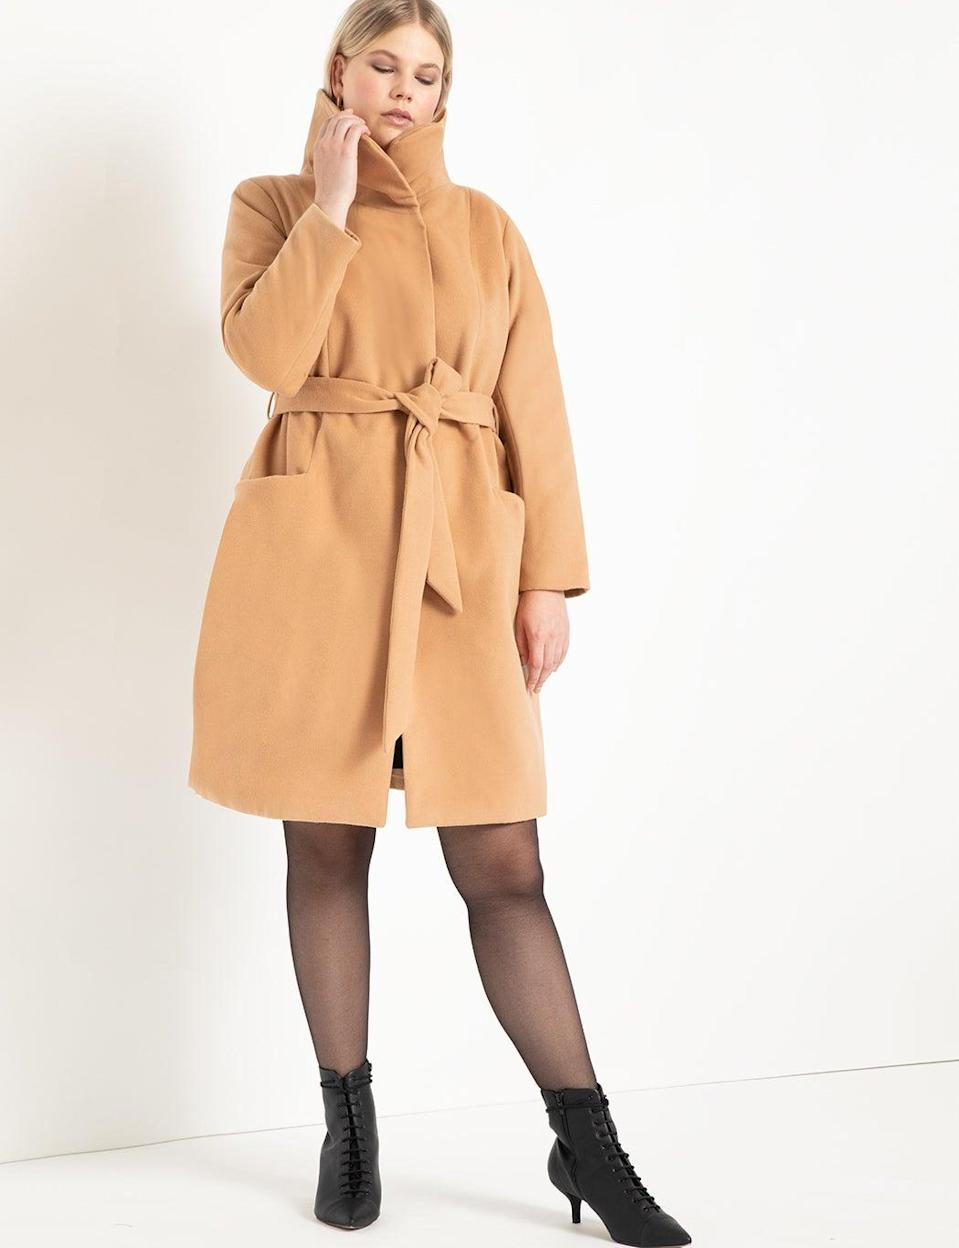 "<br><br><strong>Eloquii</strong> Funnel Neck Coat, $, available at <a href=""https://go.skimresources.com/?id=30283X879131&url=https%3A%2F%2Fwww.eloquii.com%2Ffunnel-neck-coat%2F1258125.html"" rel=""nofollow noopener"" target=""_blank"" data-ylk=""slk:Eloquii"" class=""link rapid-noclick-resp"">Eloquii</a>"